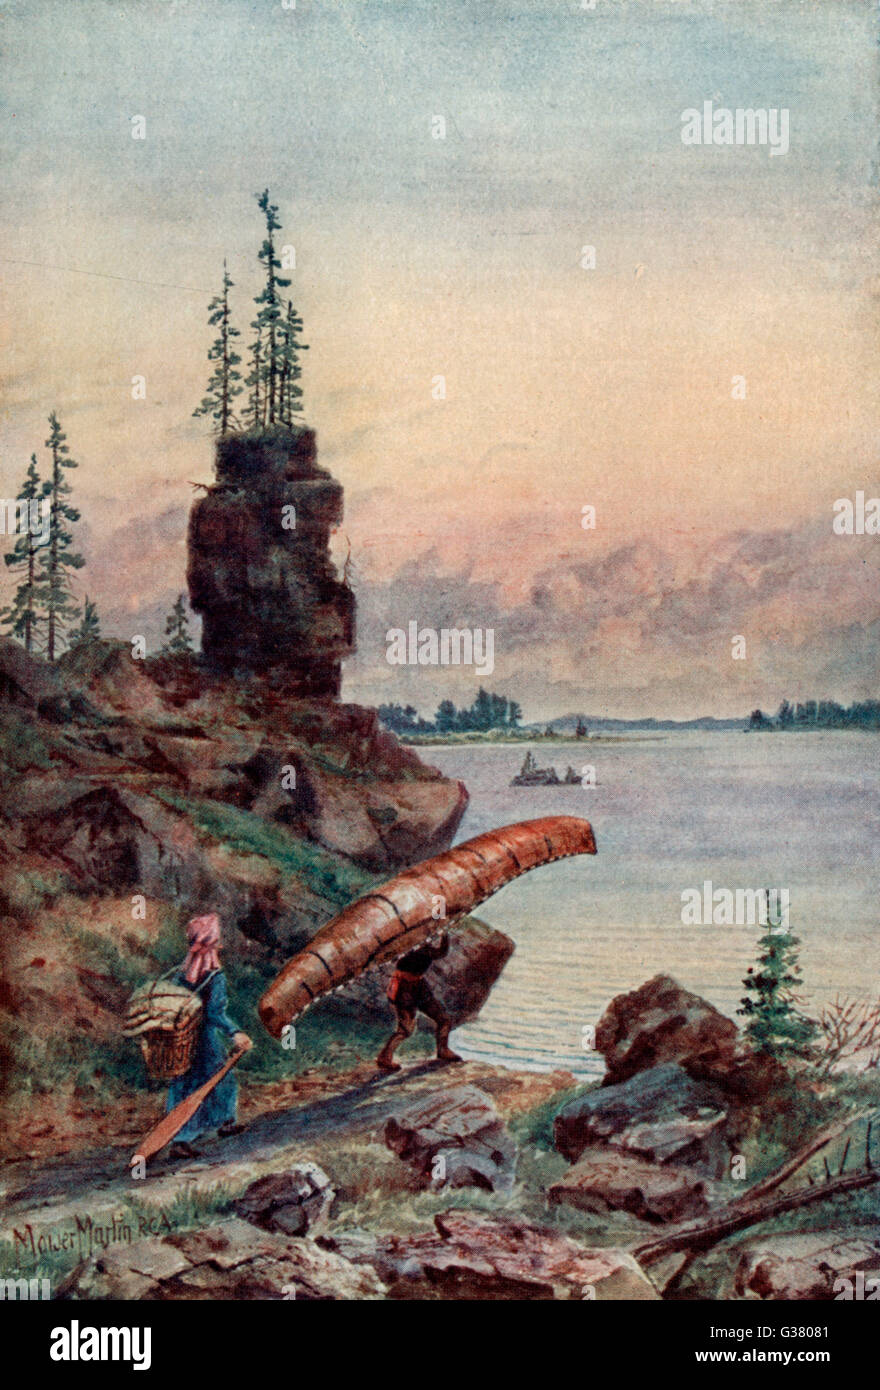 Surprise Lake:  two boatmen making a portage with their canoe       Date: 1907 - Stock Image